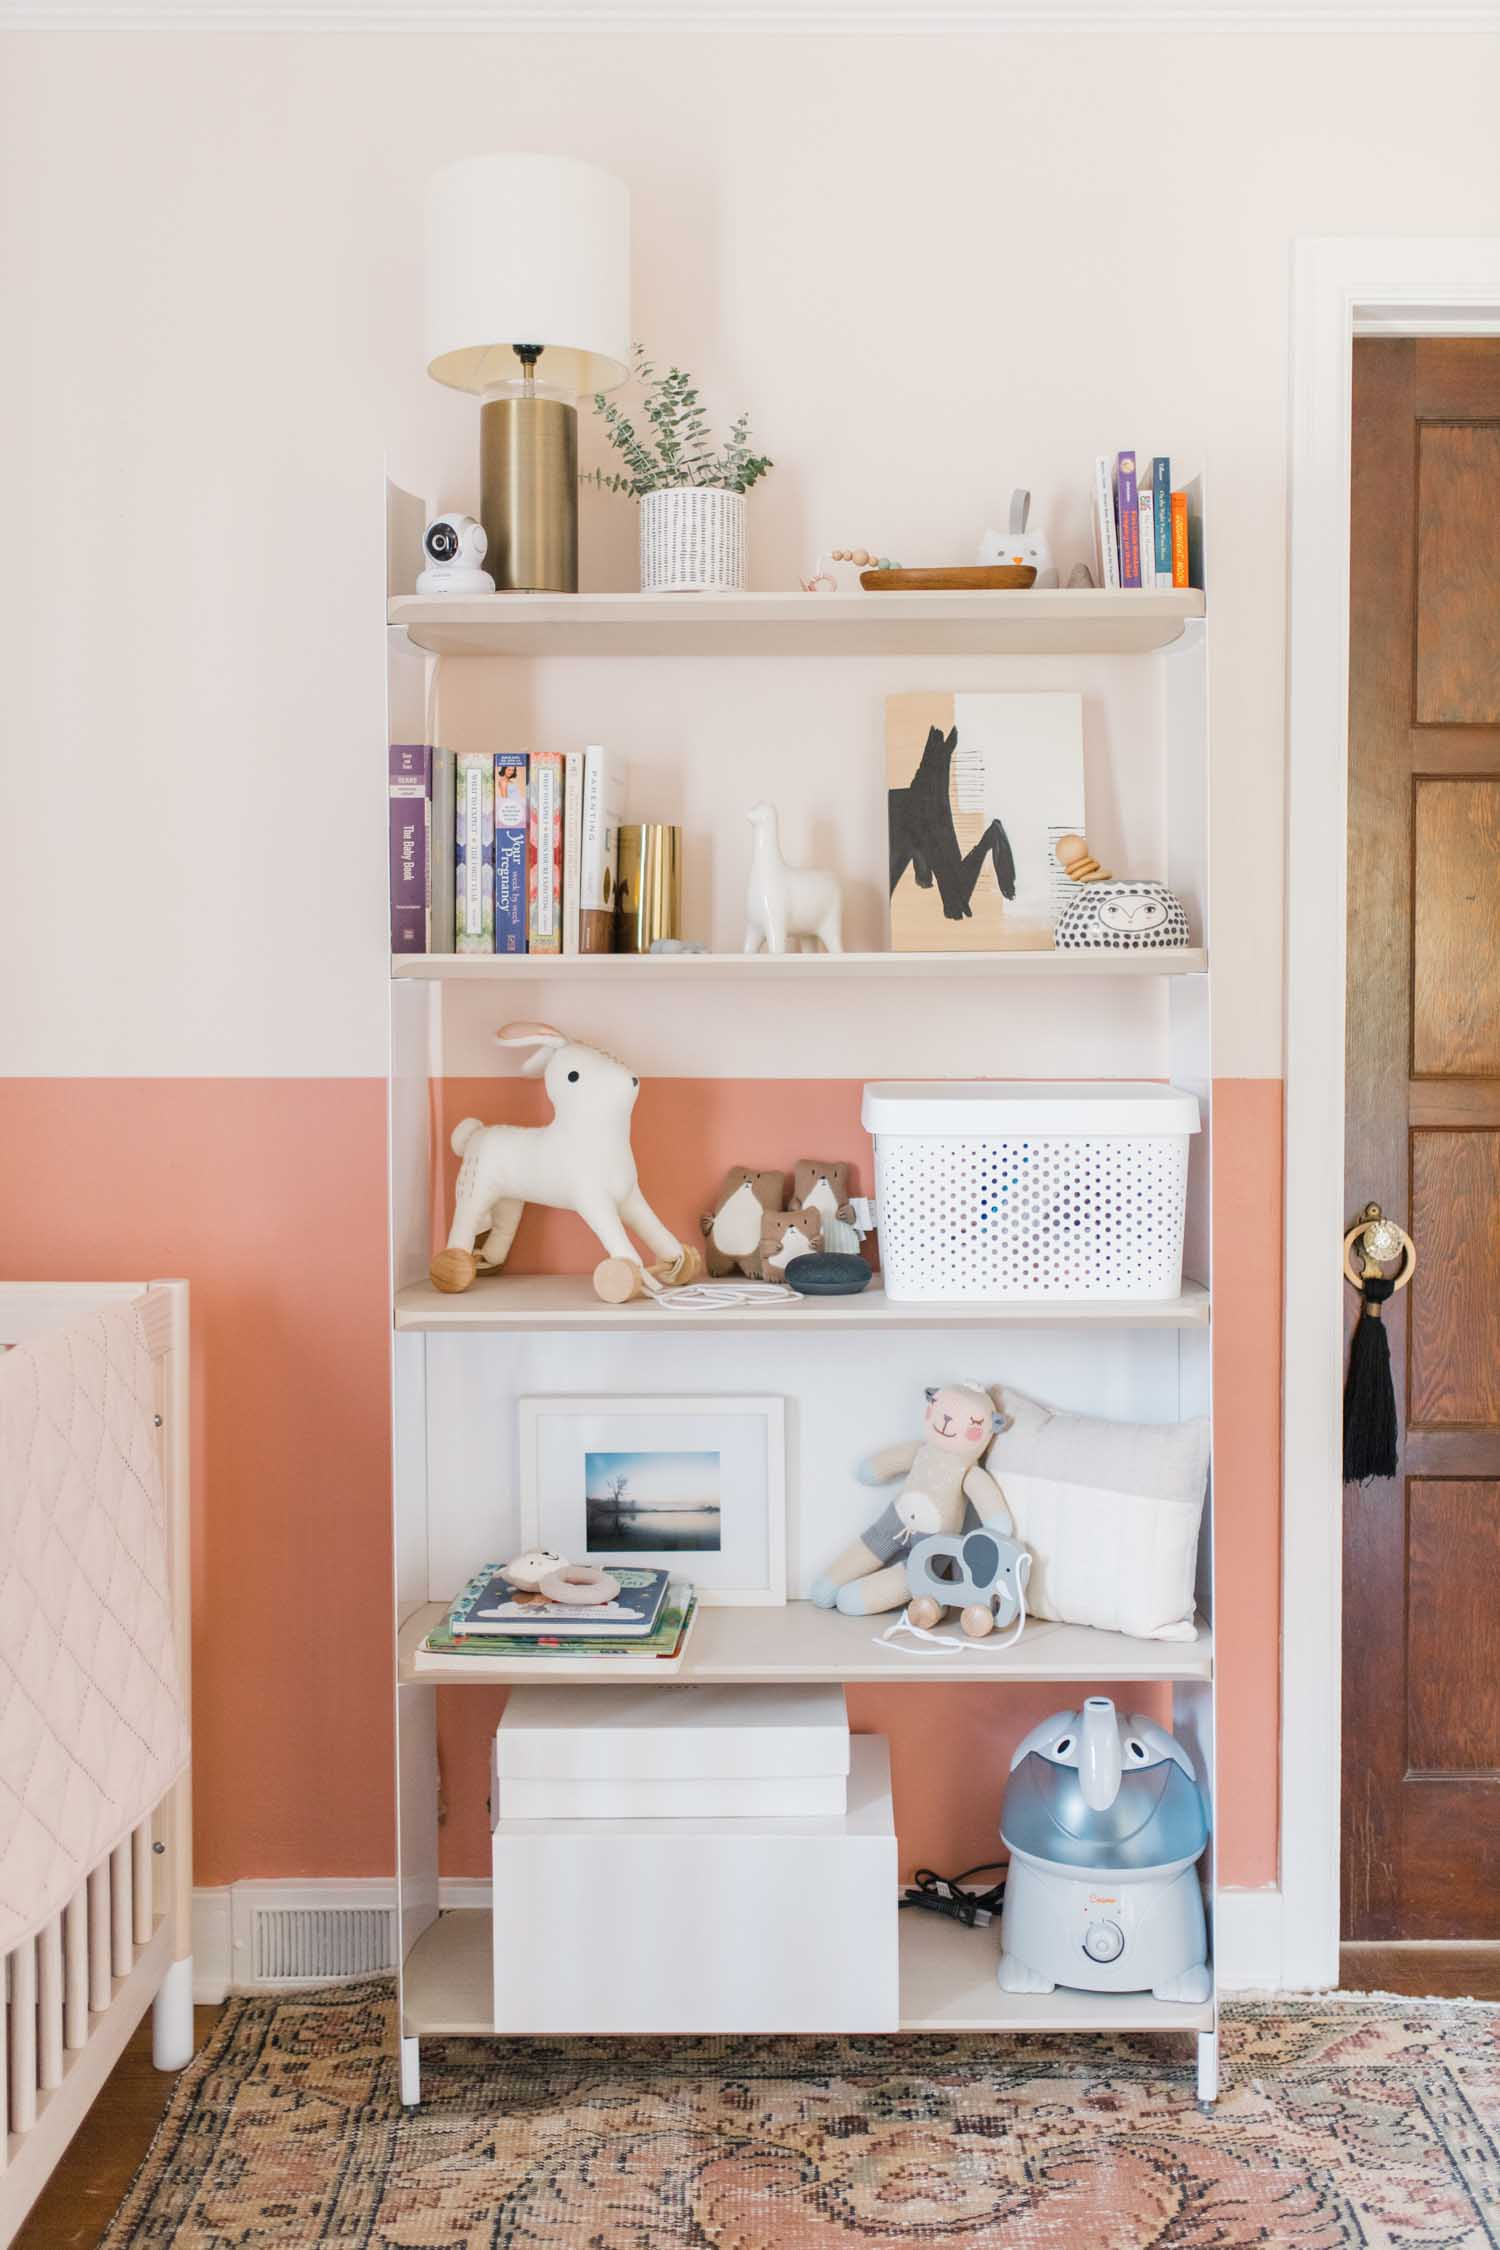 We don't have a theme really in here but lots of cute toys and some of the decor is of animals so it's fun to have that running through.